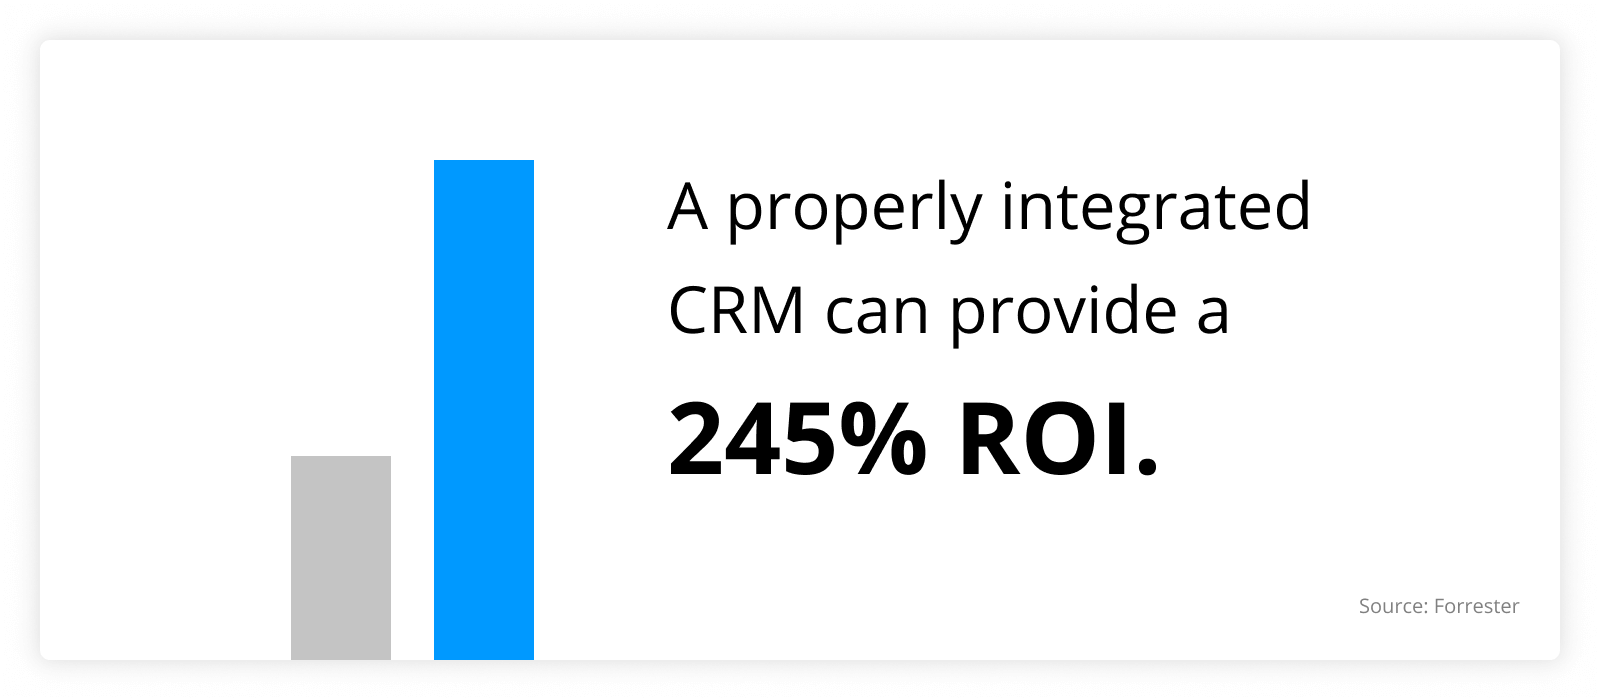 graph showing that A properly integrated CRM can provide a 245% ROI